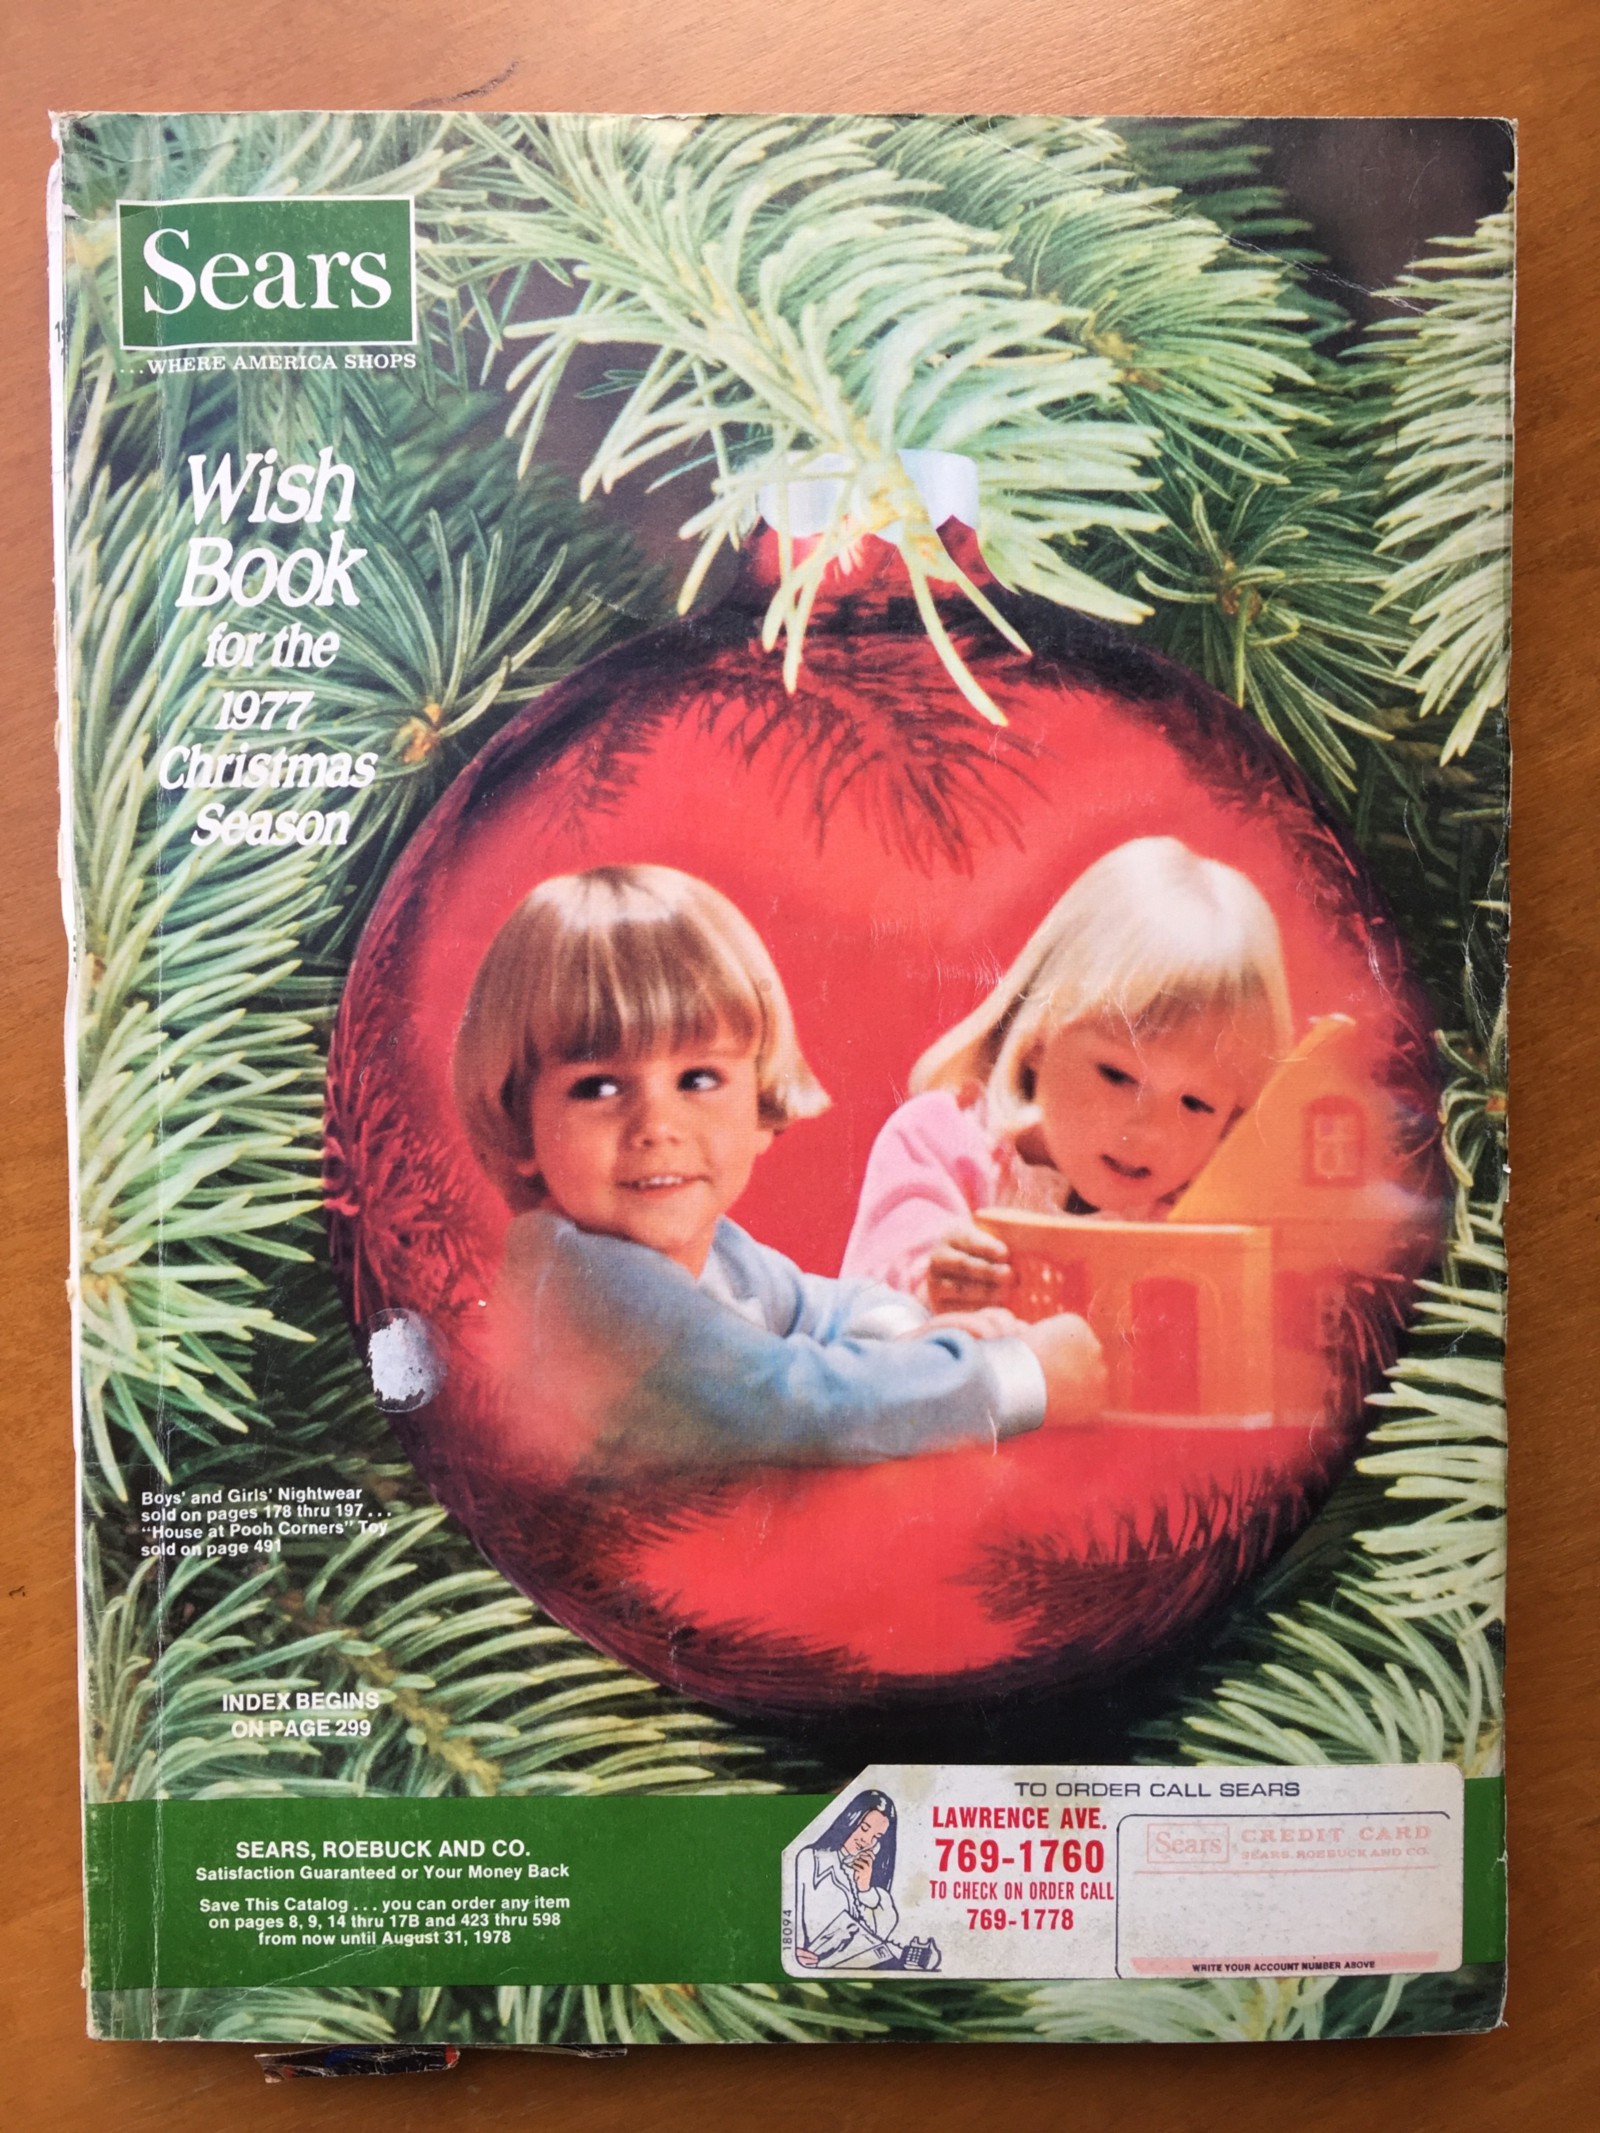 A Journal of Musical ThingsRewind to 1977: The Sears